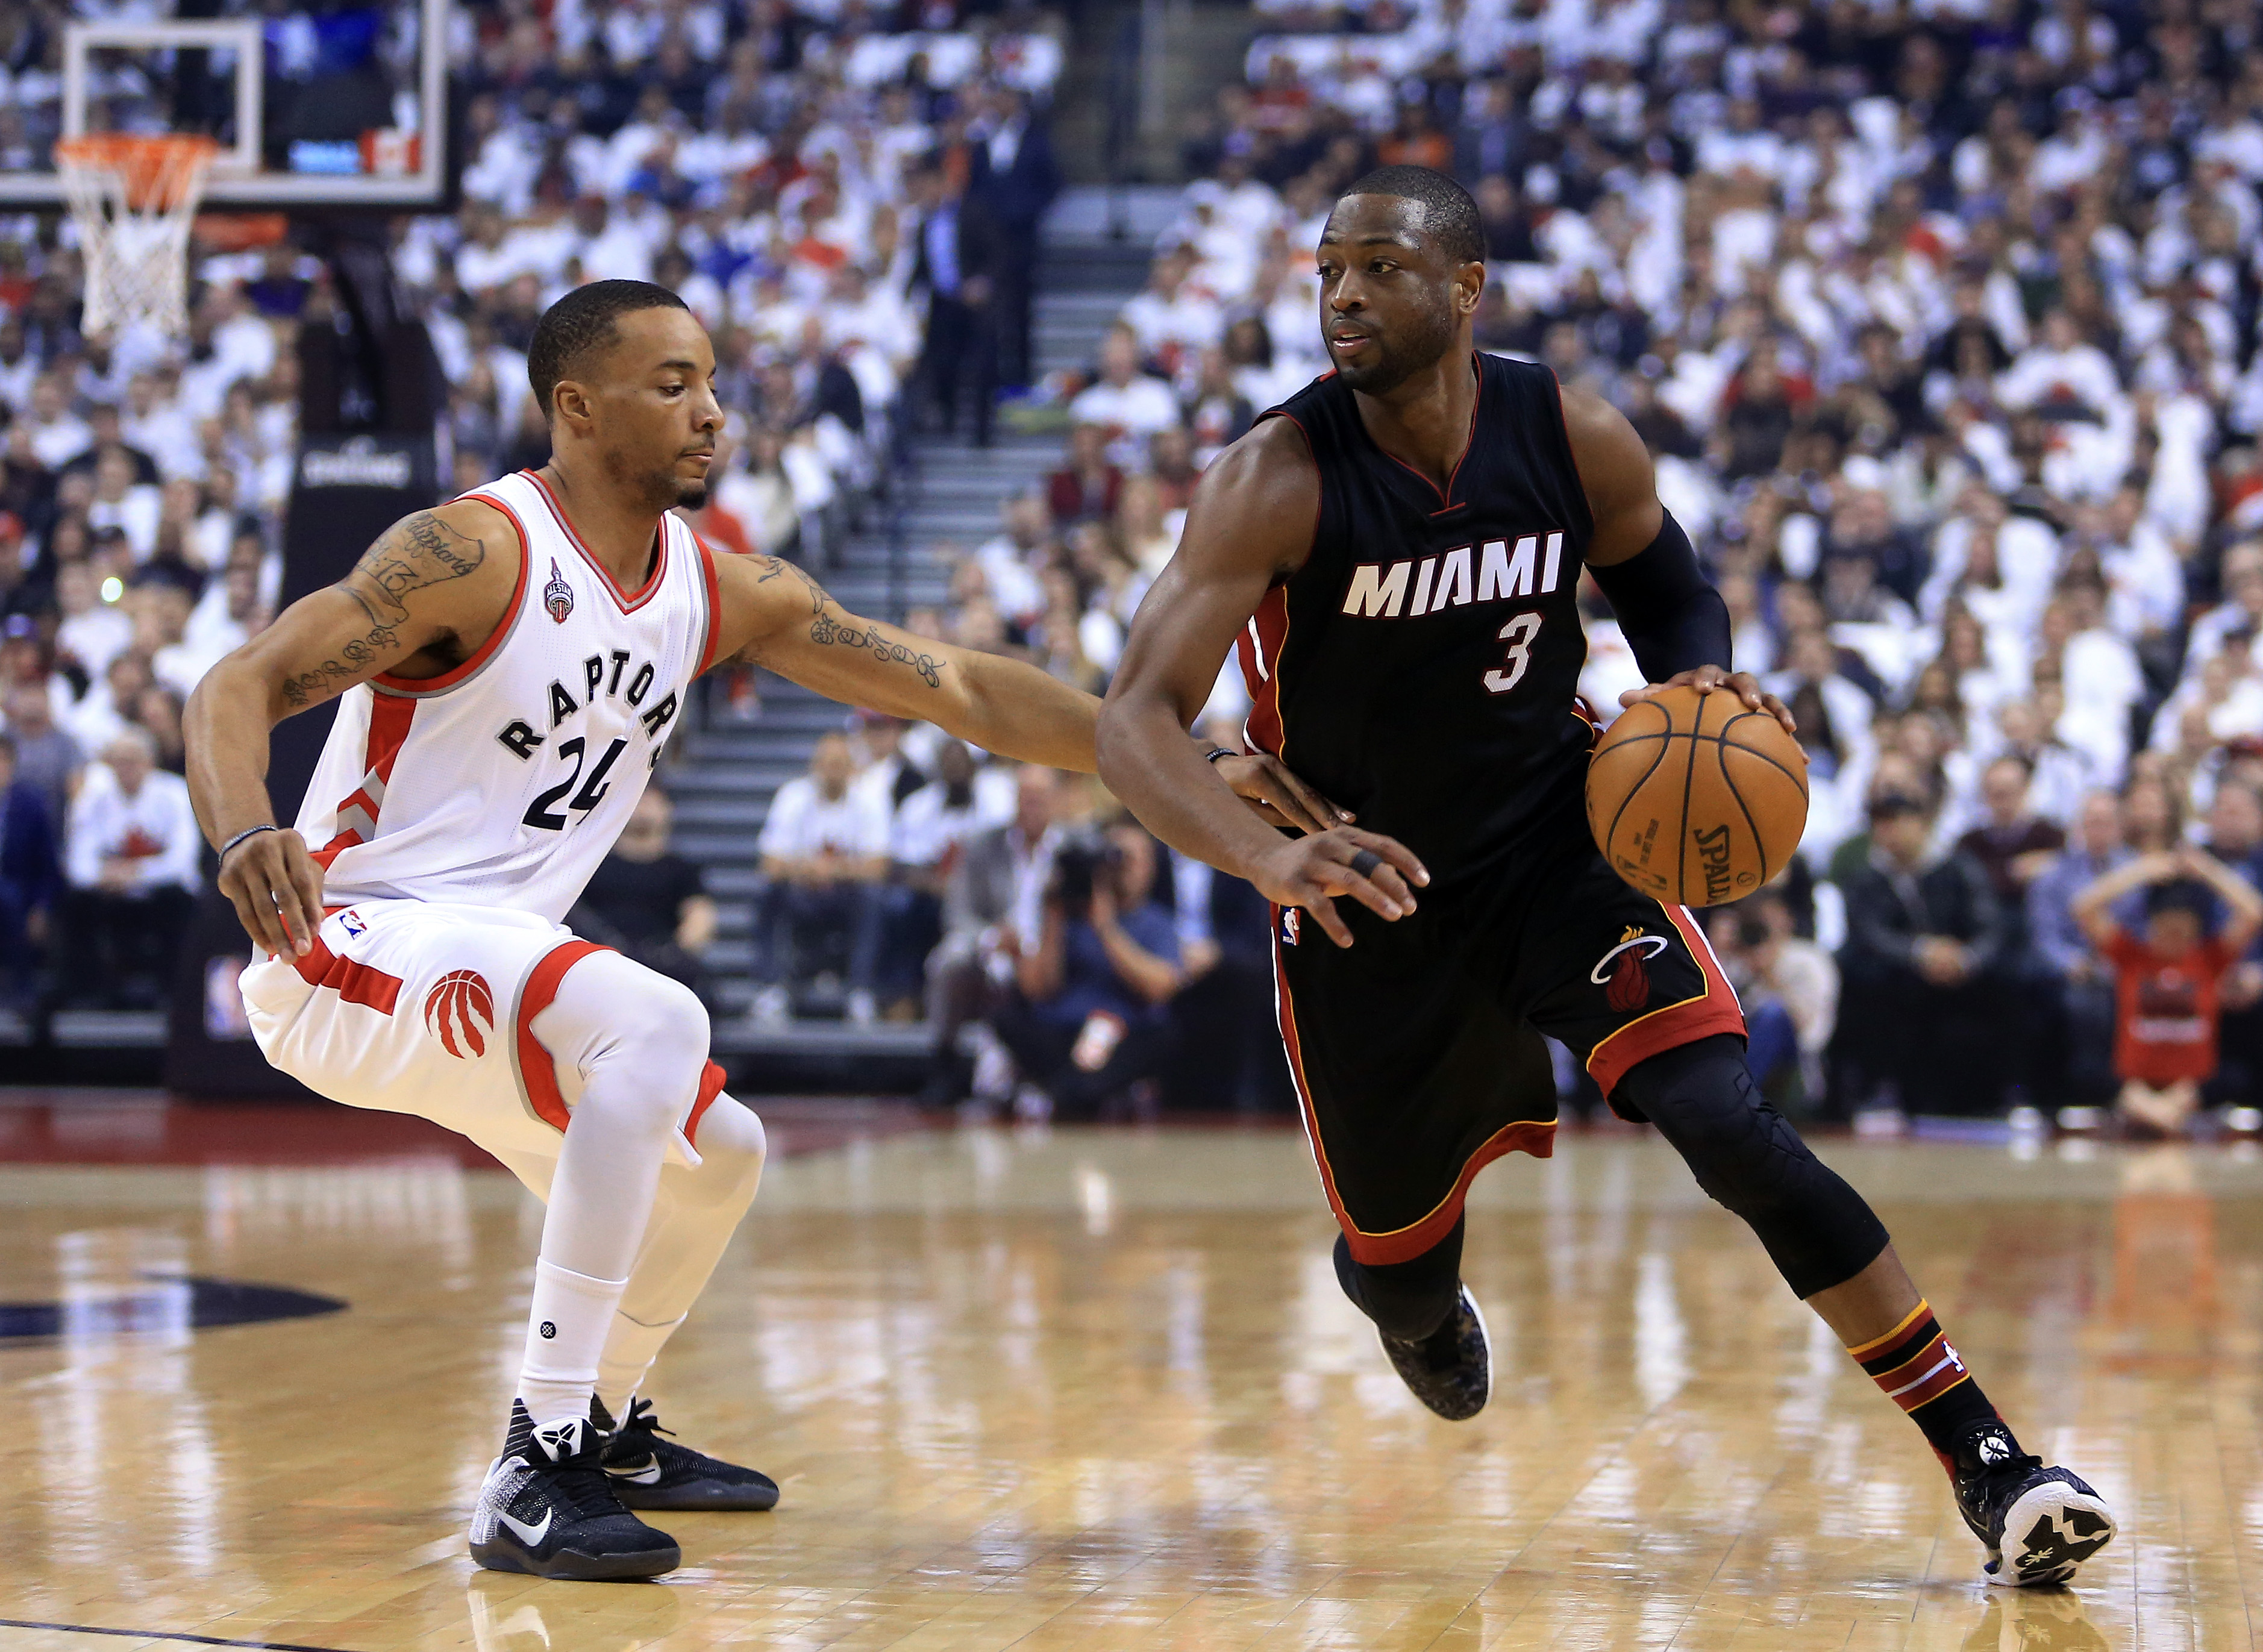 TORONTO, ON - MAY 03:  Dwyane Wade #3 of the Miami Heat dribbles the ball as Norman Powell #24 of the Toronto Raptors defends in the first half of Game One of the Eastern Conference Semifinals during the 2016 NBA Playoffs at the Air Canada Centre on May 3